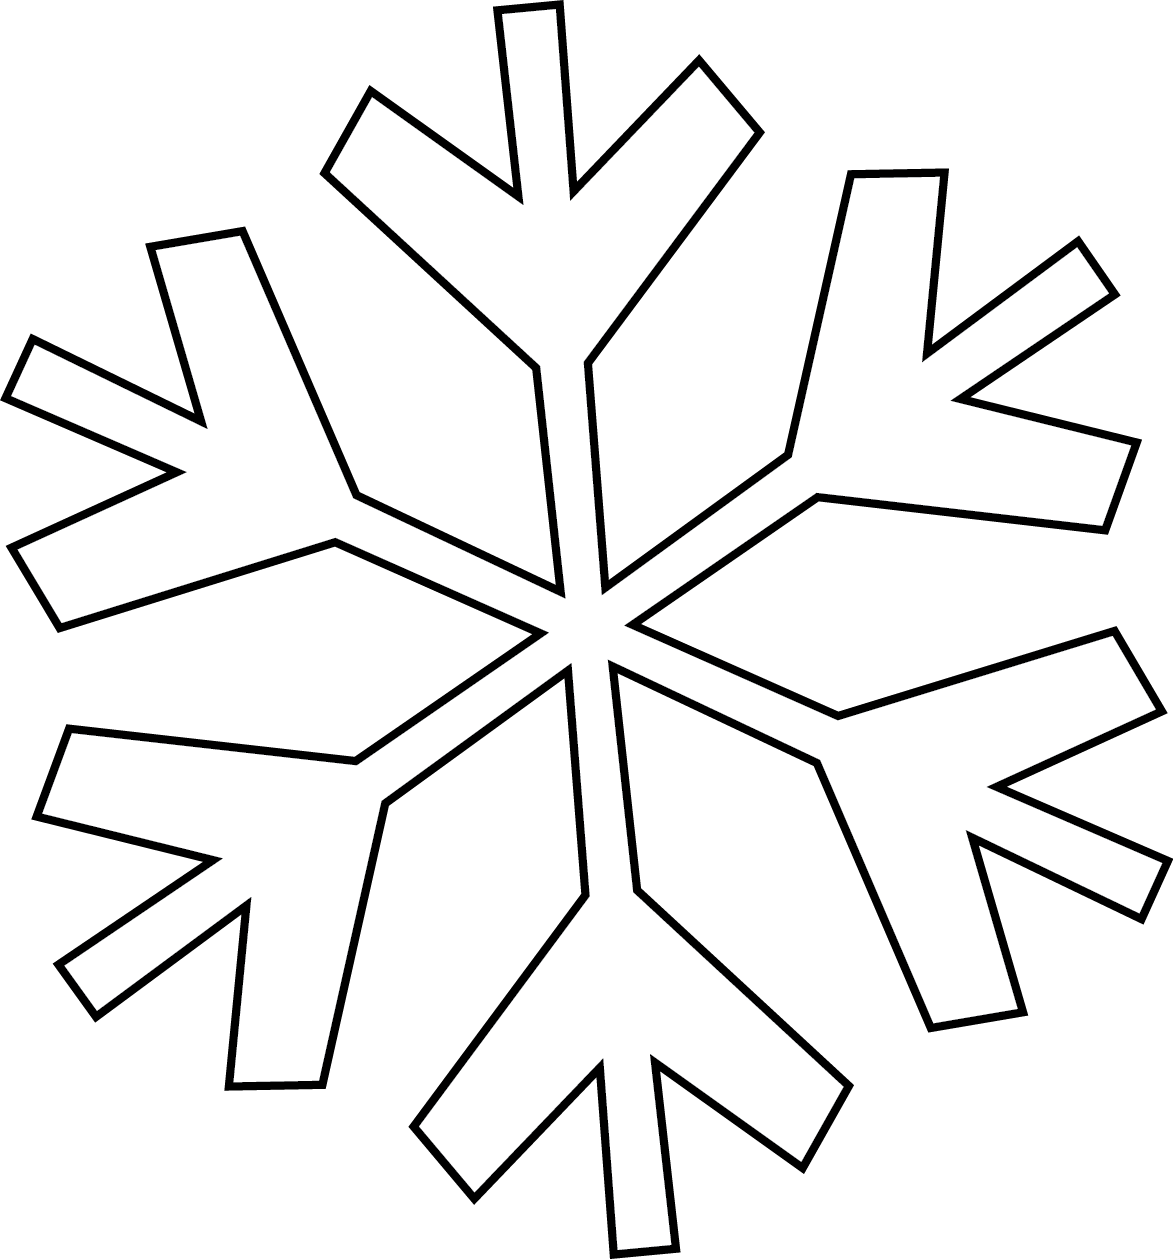 Snowflake words clipart clip art royalty free download Snowflake Black And White | Free download best Snowflake Black And ... clip art royalty free download